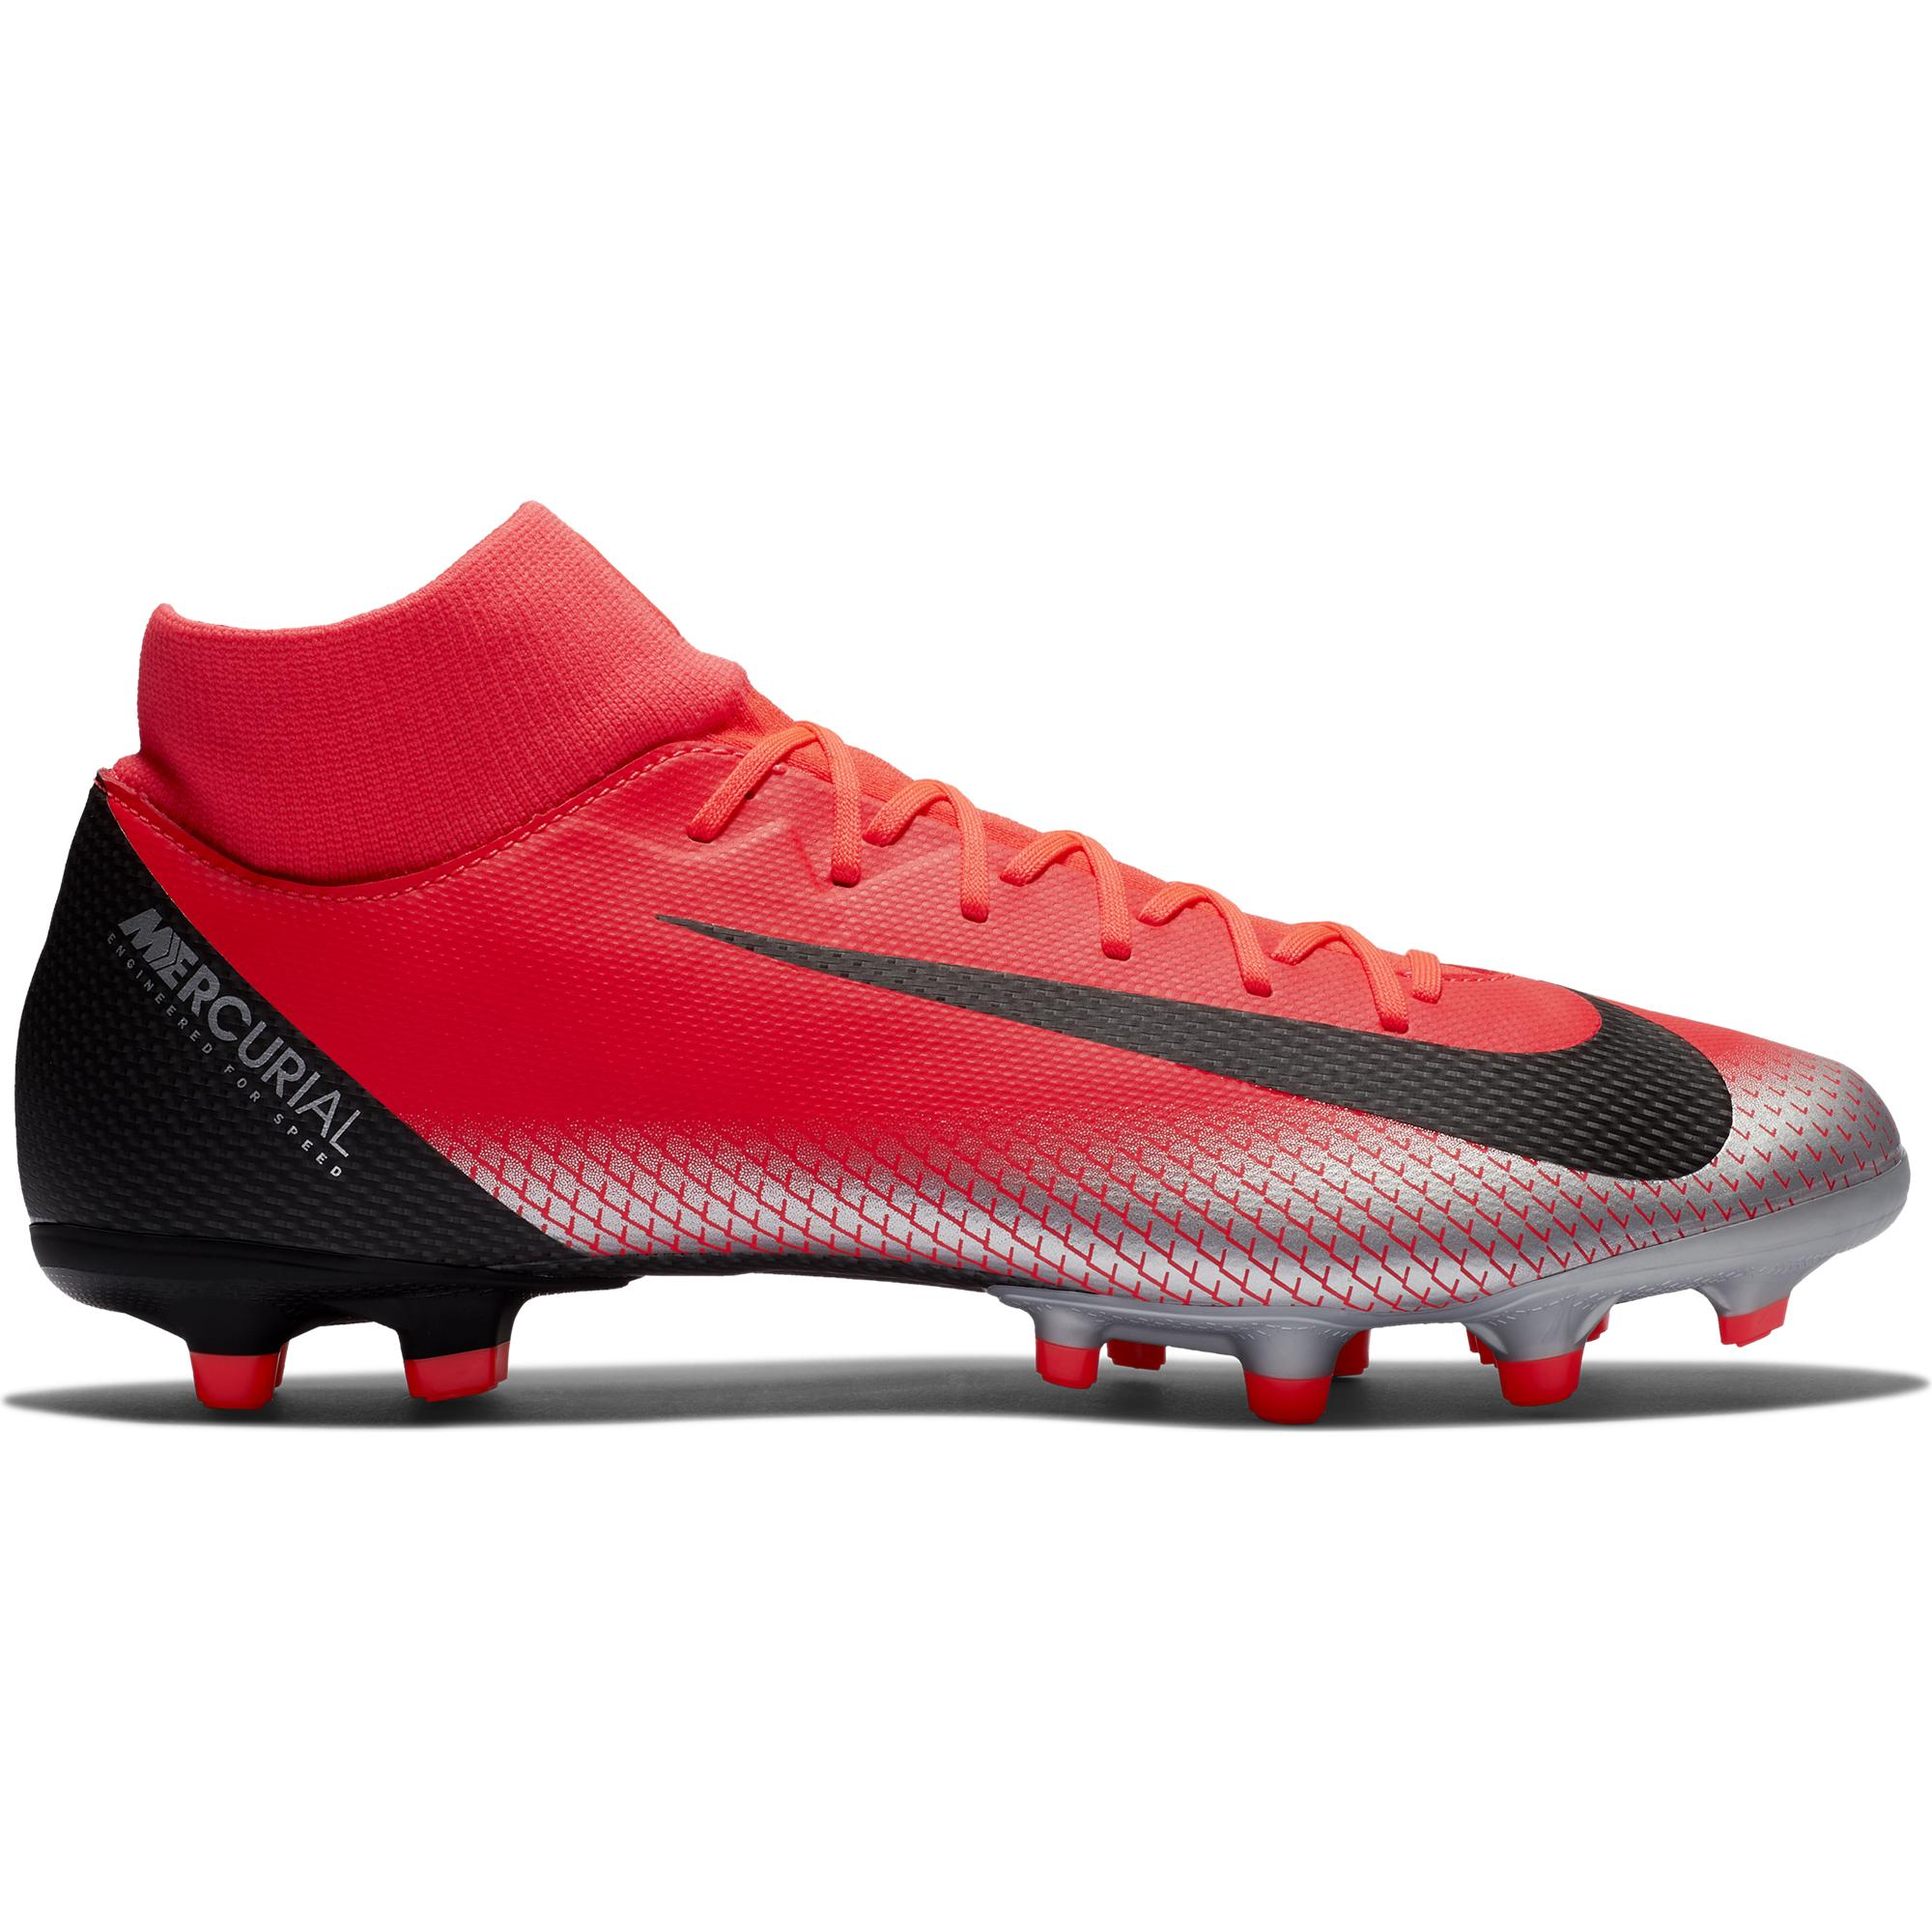 Nike Scarpe Calcio Cr7 Superfly 6 Academy Mg